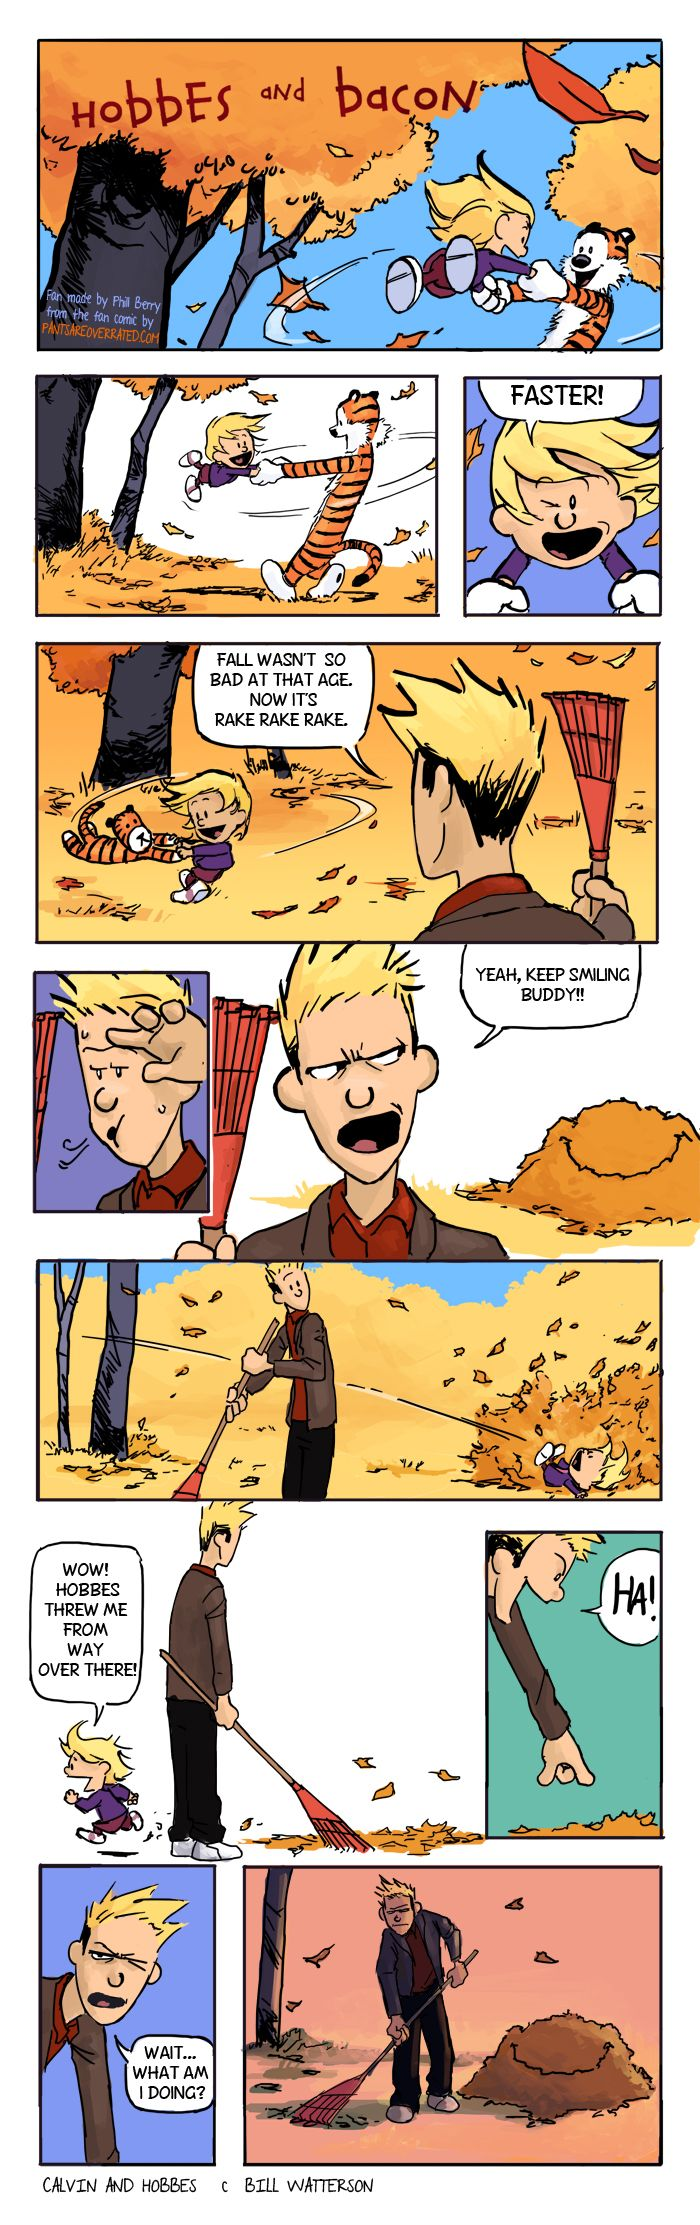 Hobbes and Bacon 2 by ~Phill-Art on deviantART,,,loved calvin and hobbes and this is a wonderful continuation of that